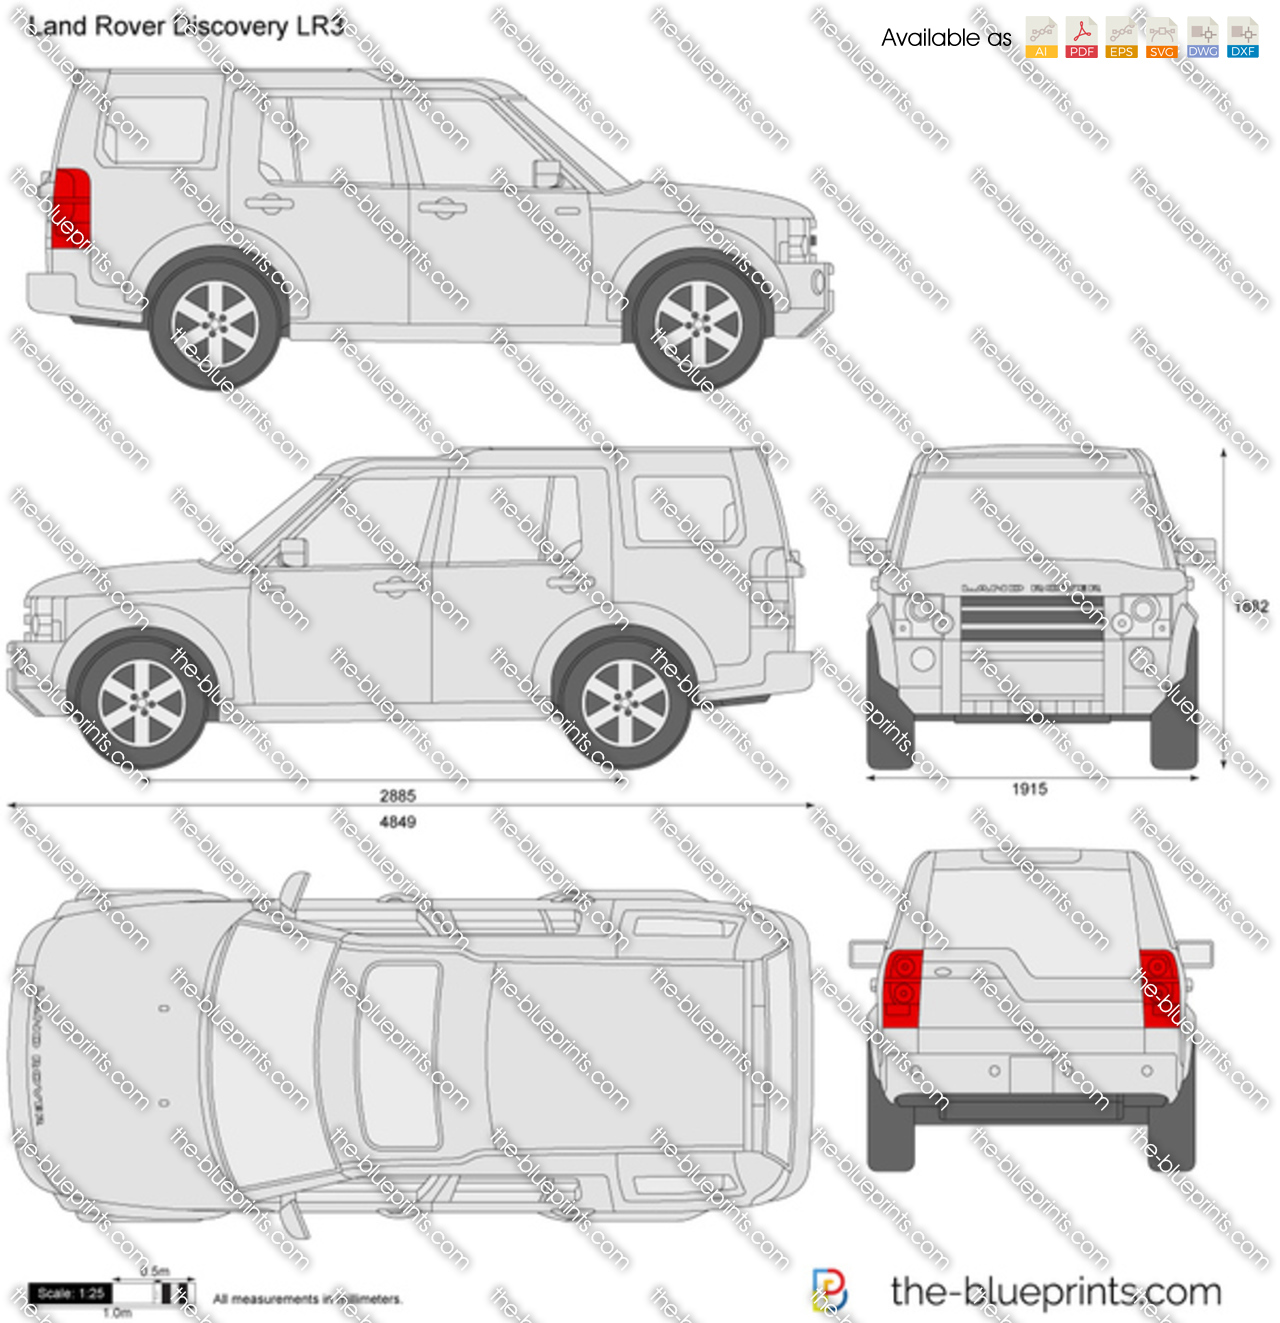 The Blueprints Com Vector Drawing Land Rover Discovery Lr3